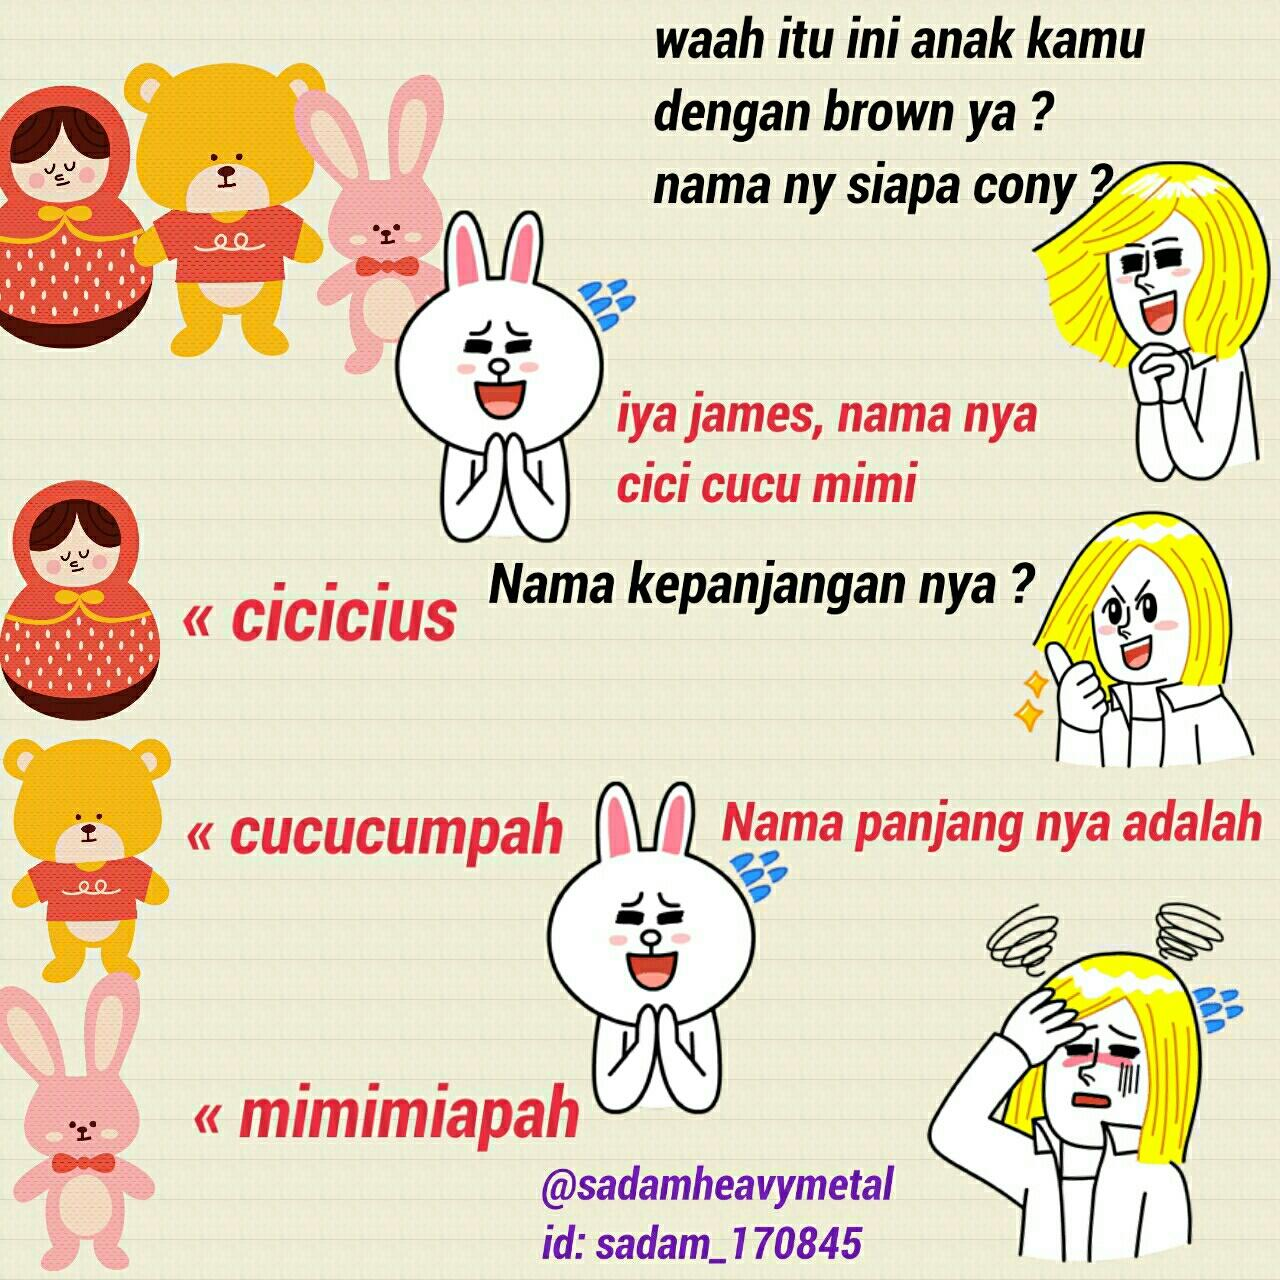 Line Comik On Twitter Anaknya Brown Dan Cony D LN N RT